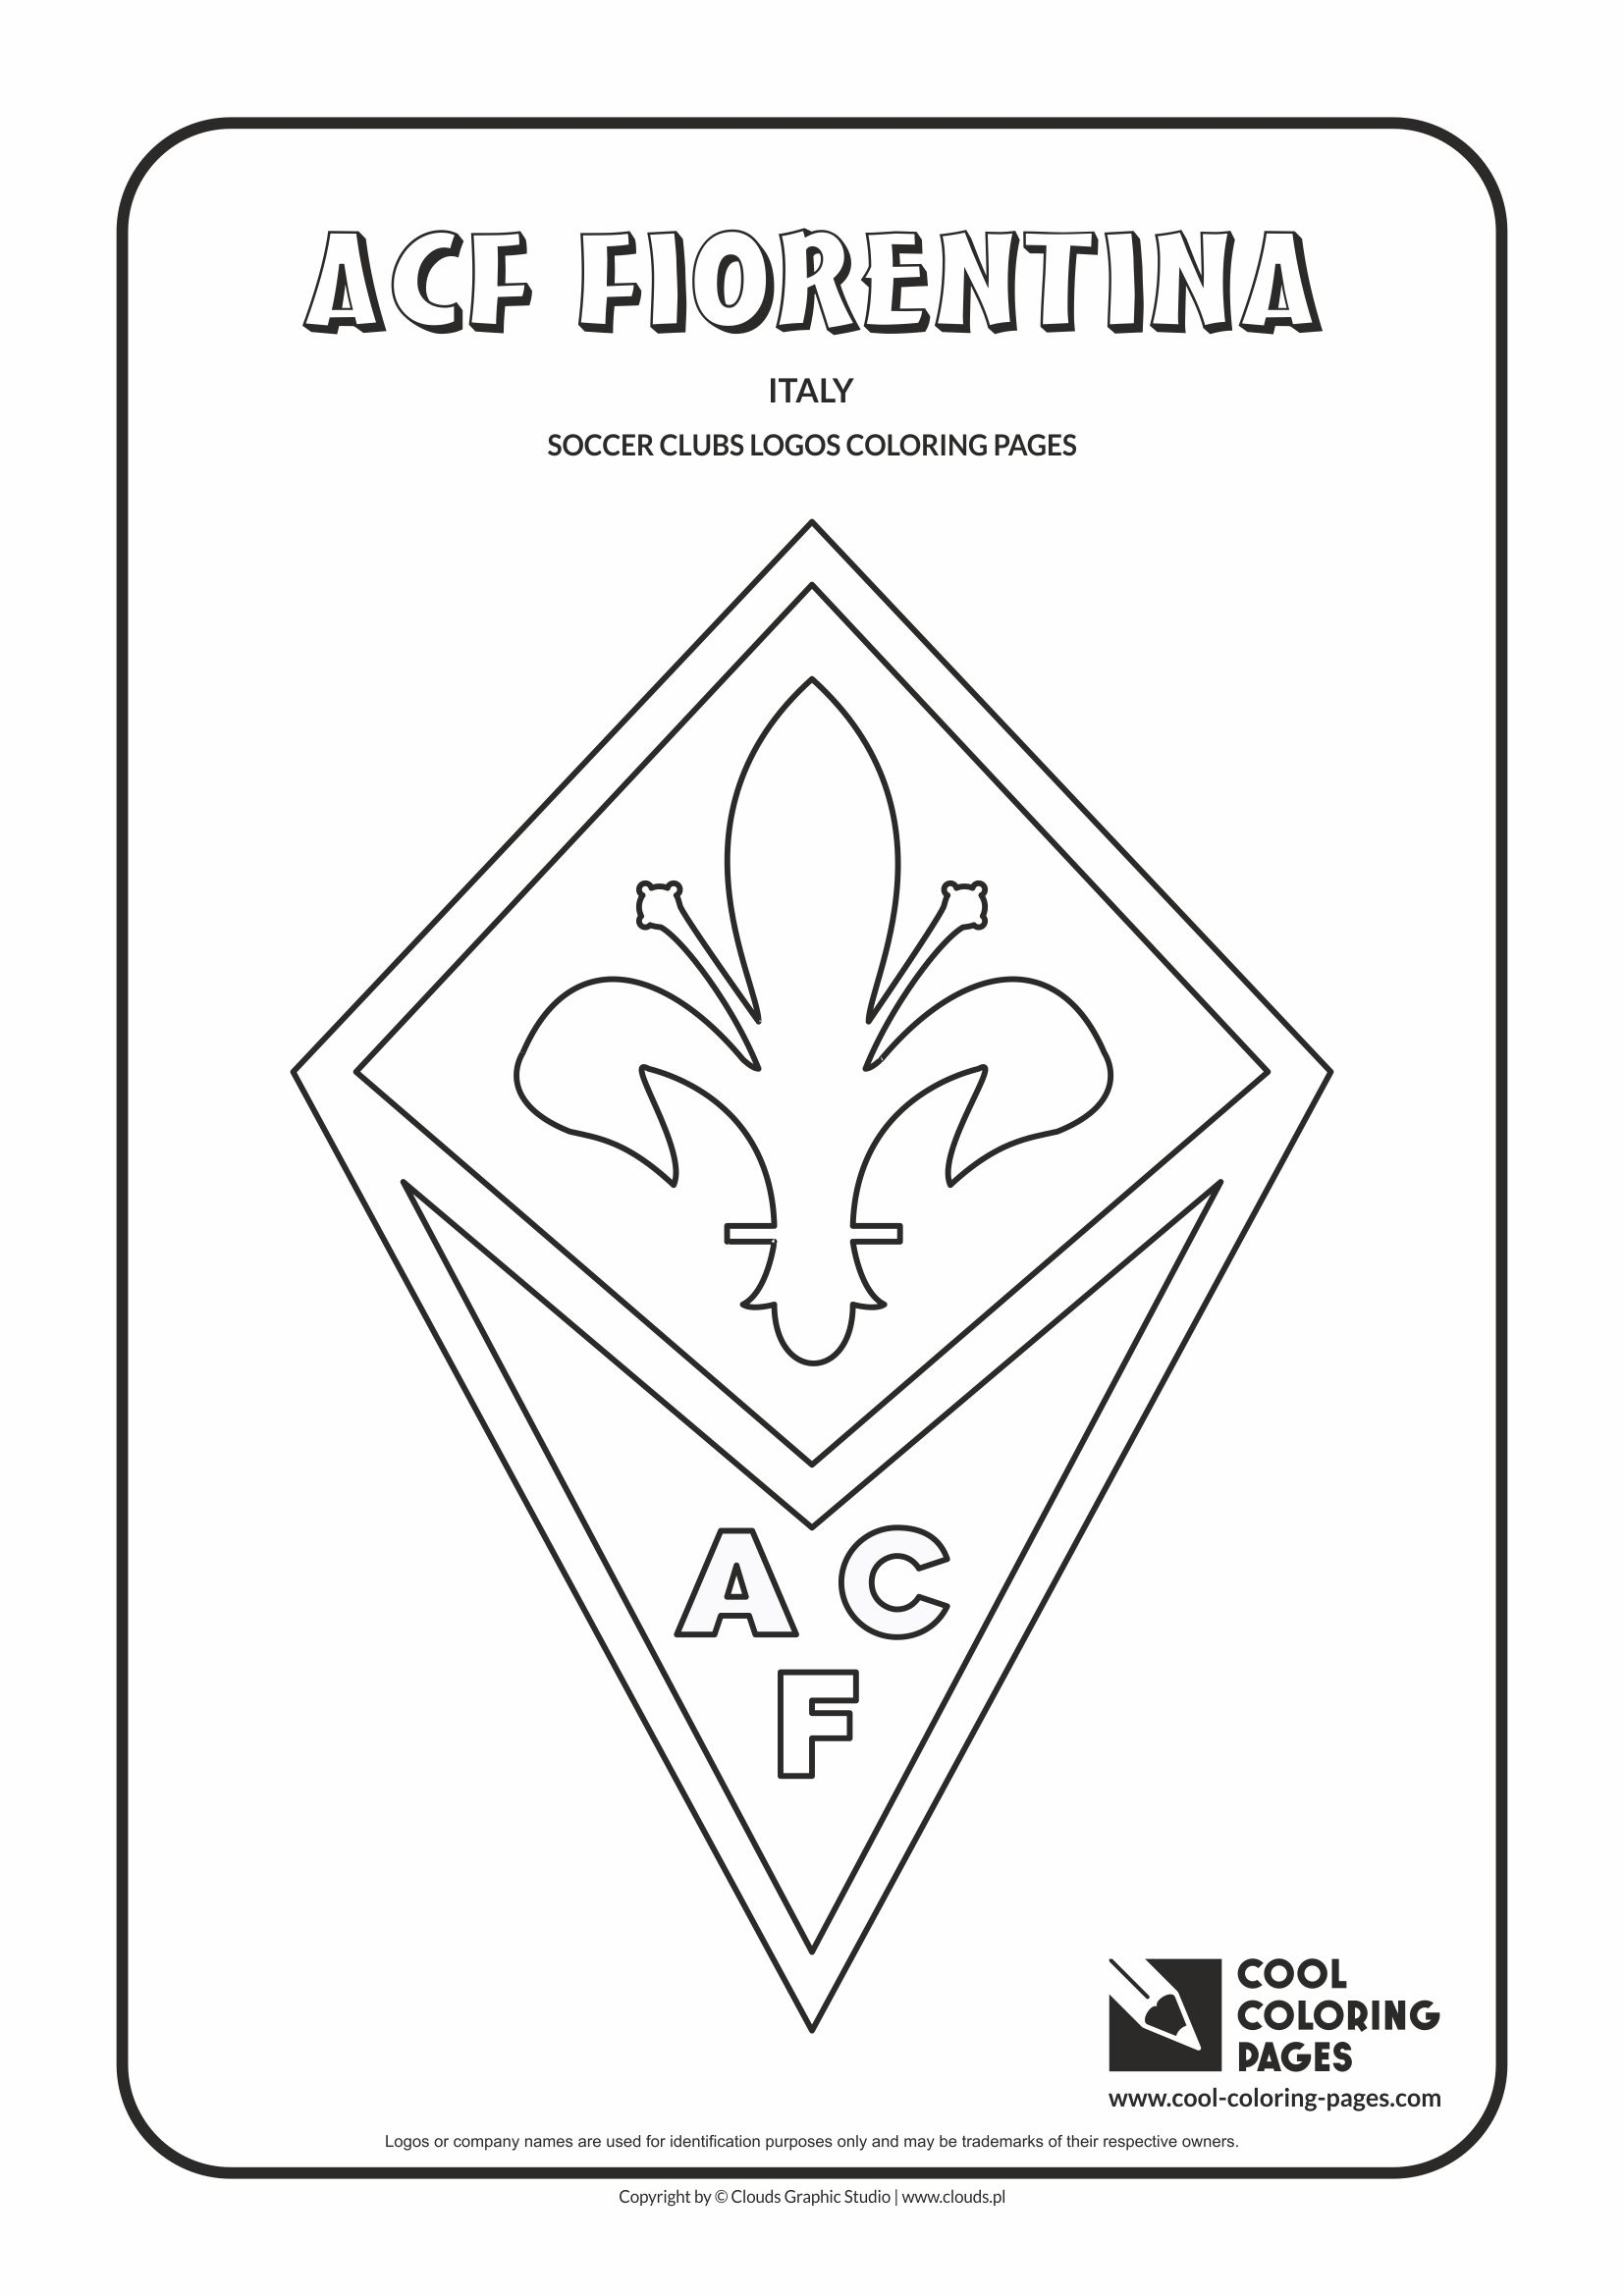 Uncategorized Logo Coloring Pages soccer clubs logos cool coloring pages acf fiorentina logo page with colouring